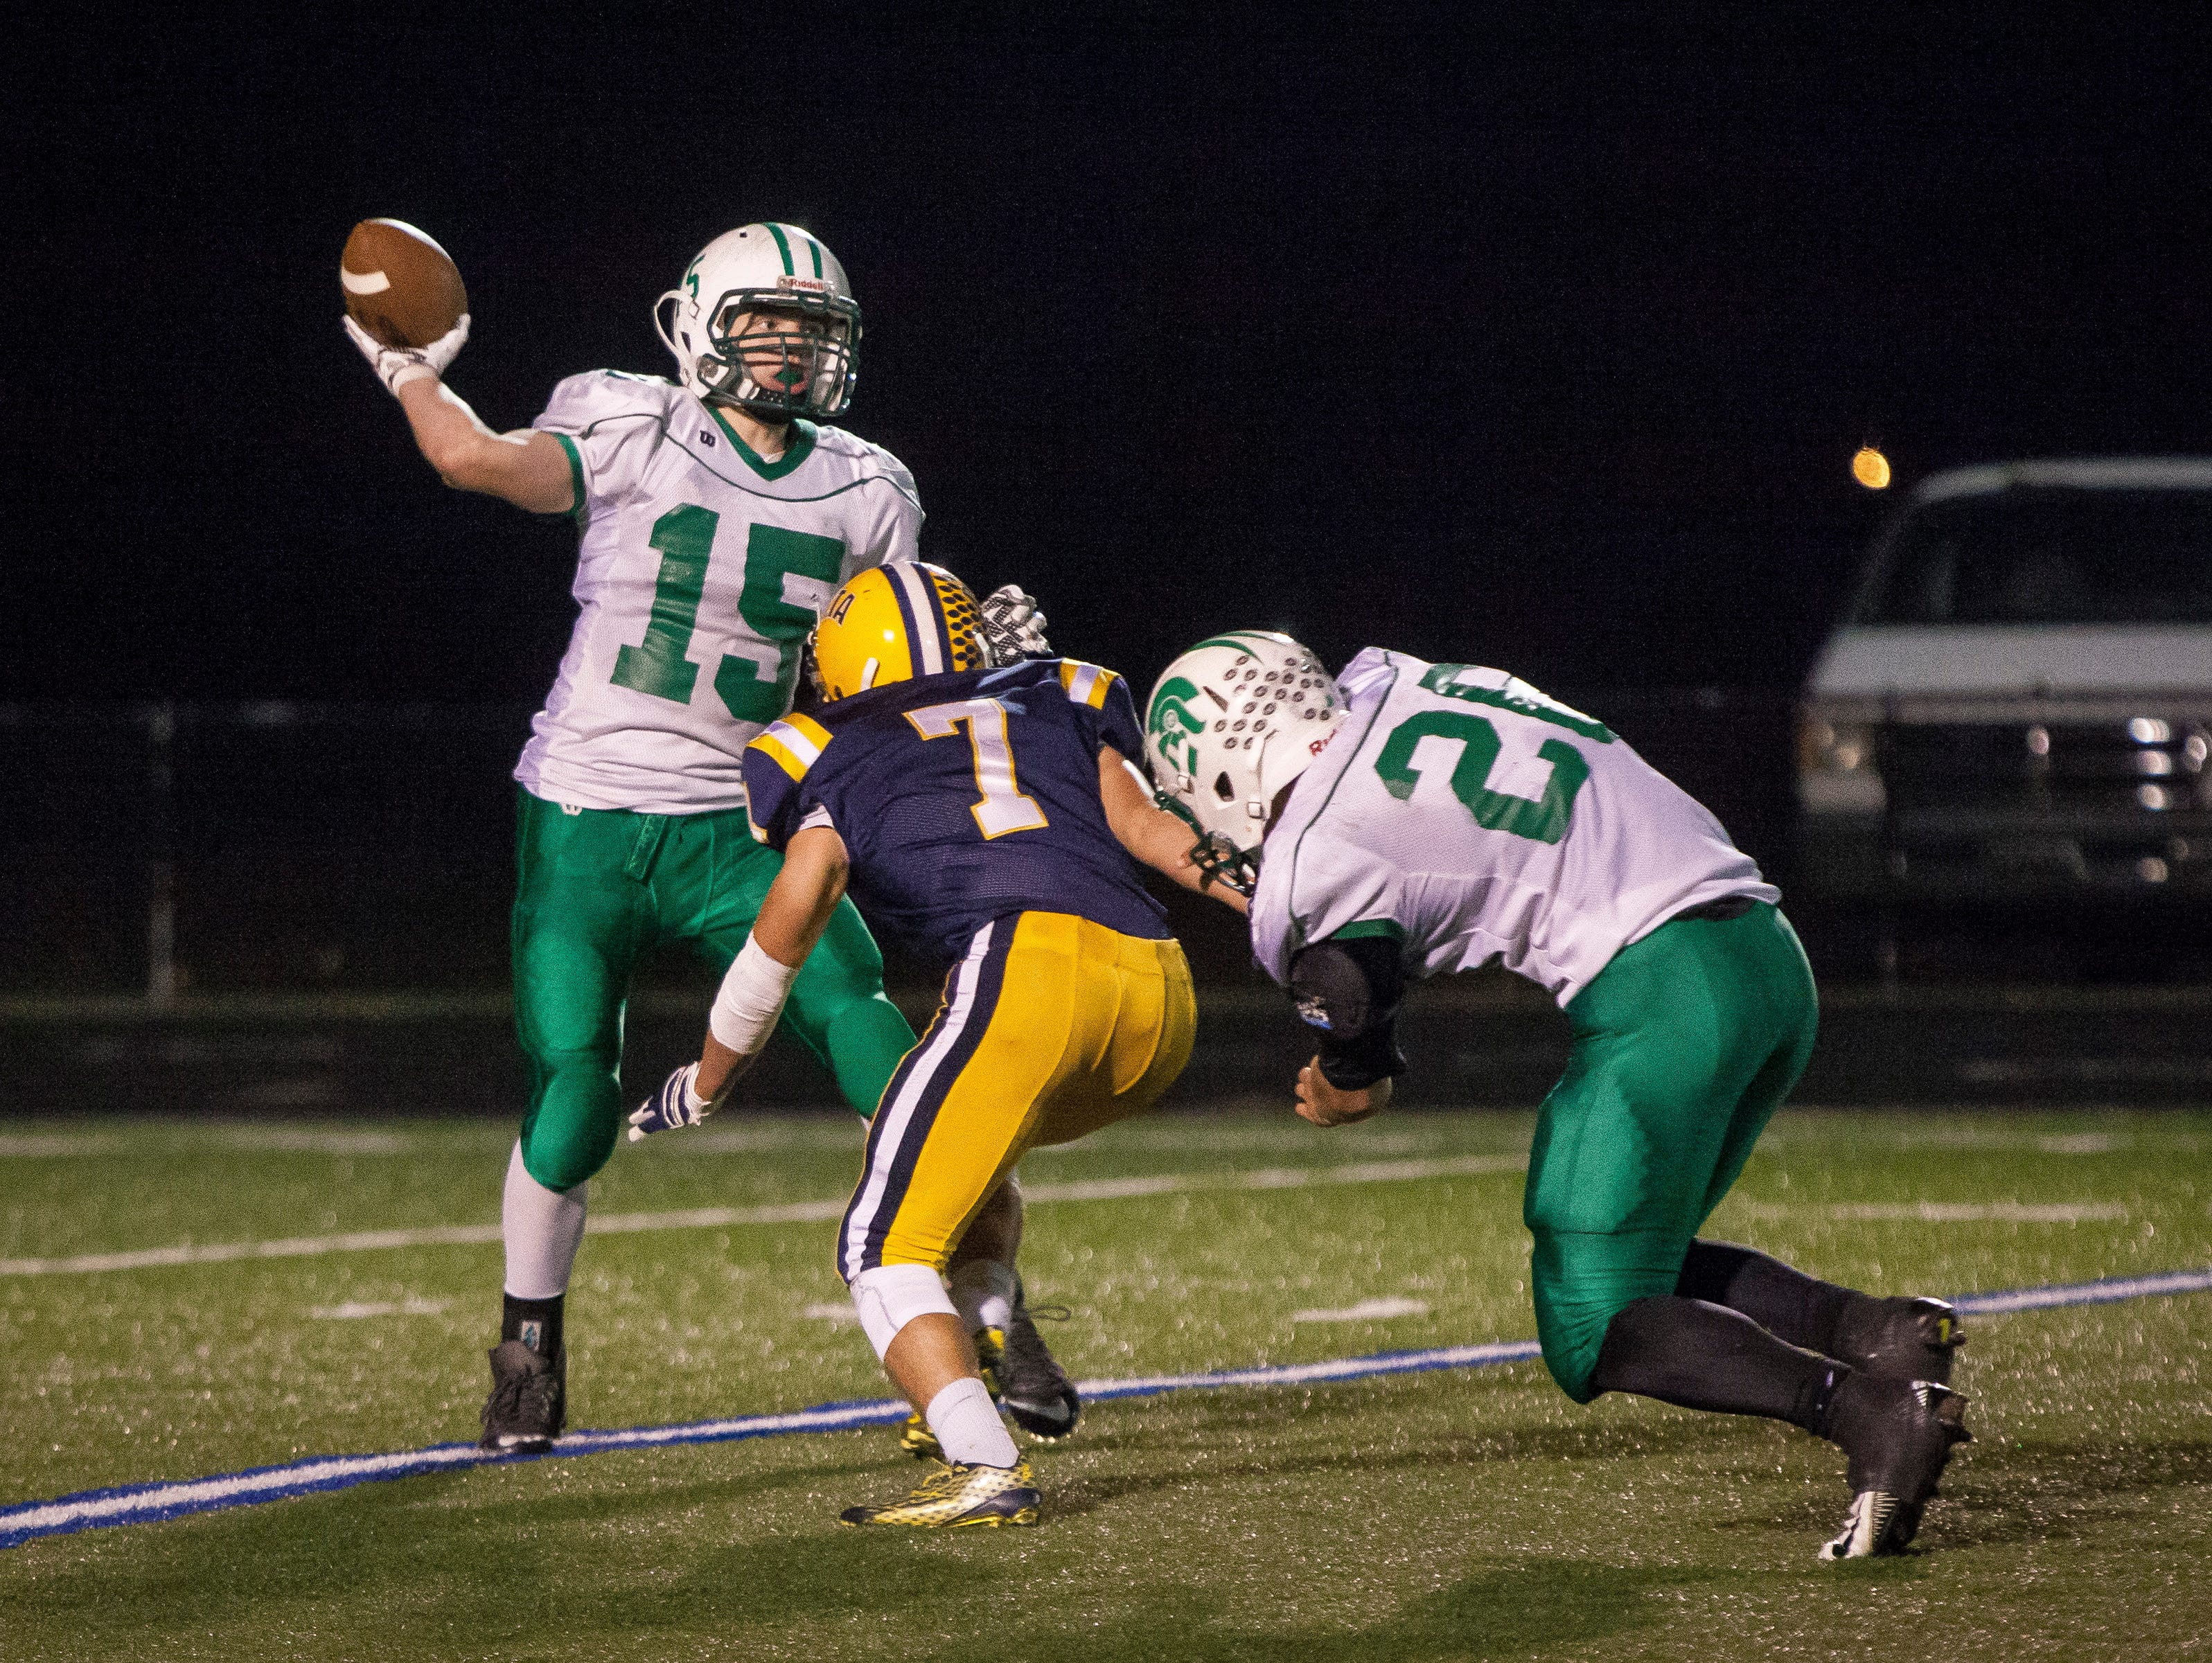 New Castle's Robbie Witham tries to throw the ball before being brought down by Delta's Blake Green Friday night at the Delta sectional game. Delta won 49-7.